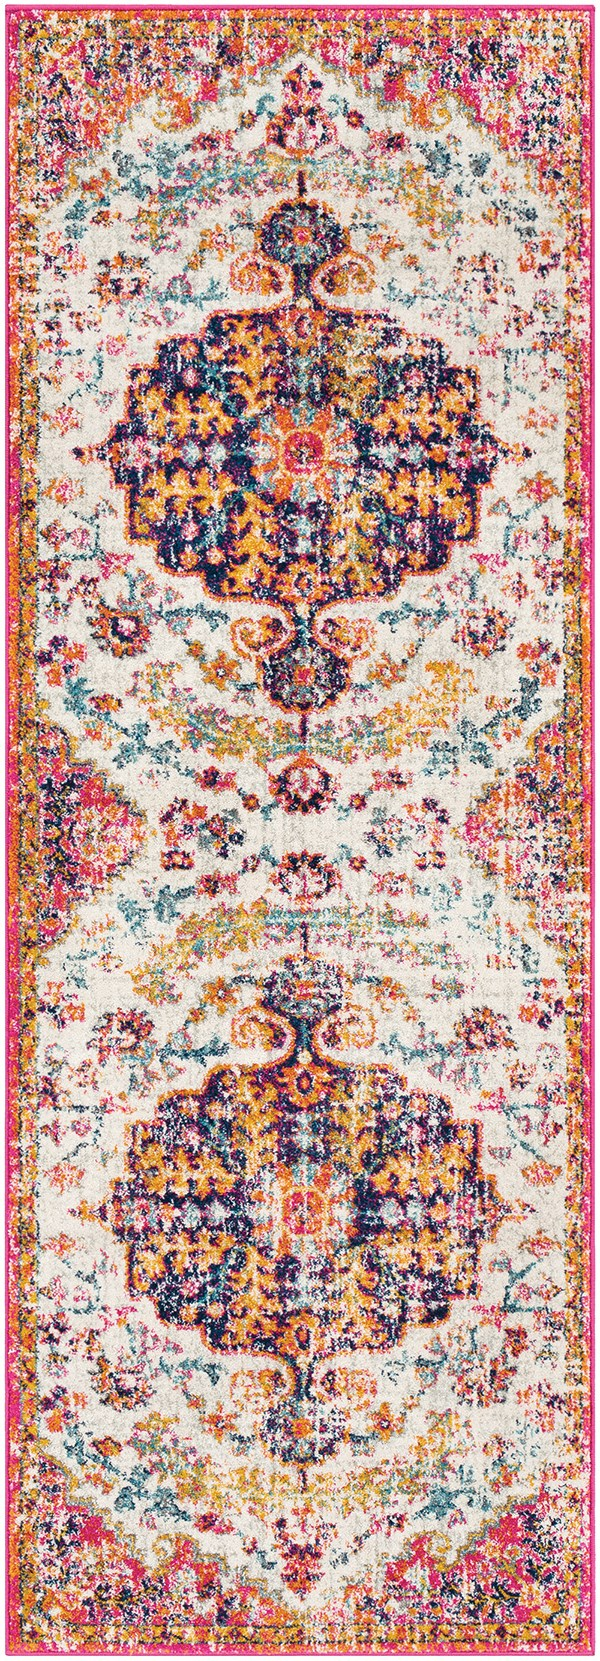 Beige, Saffron, Light Gray Bohemian Area Rug